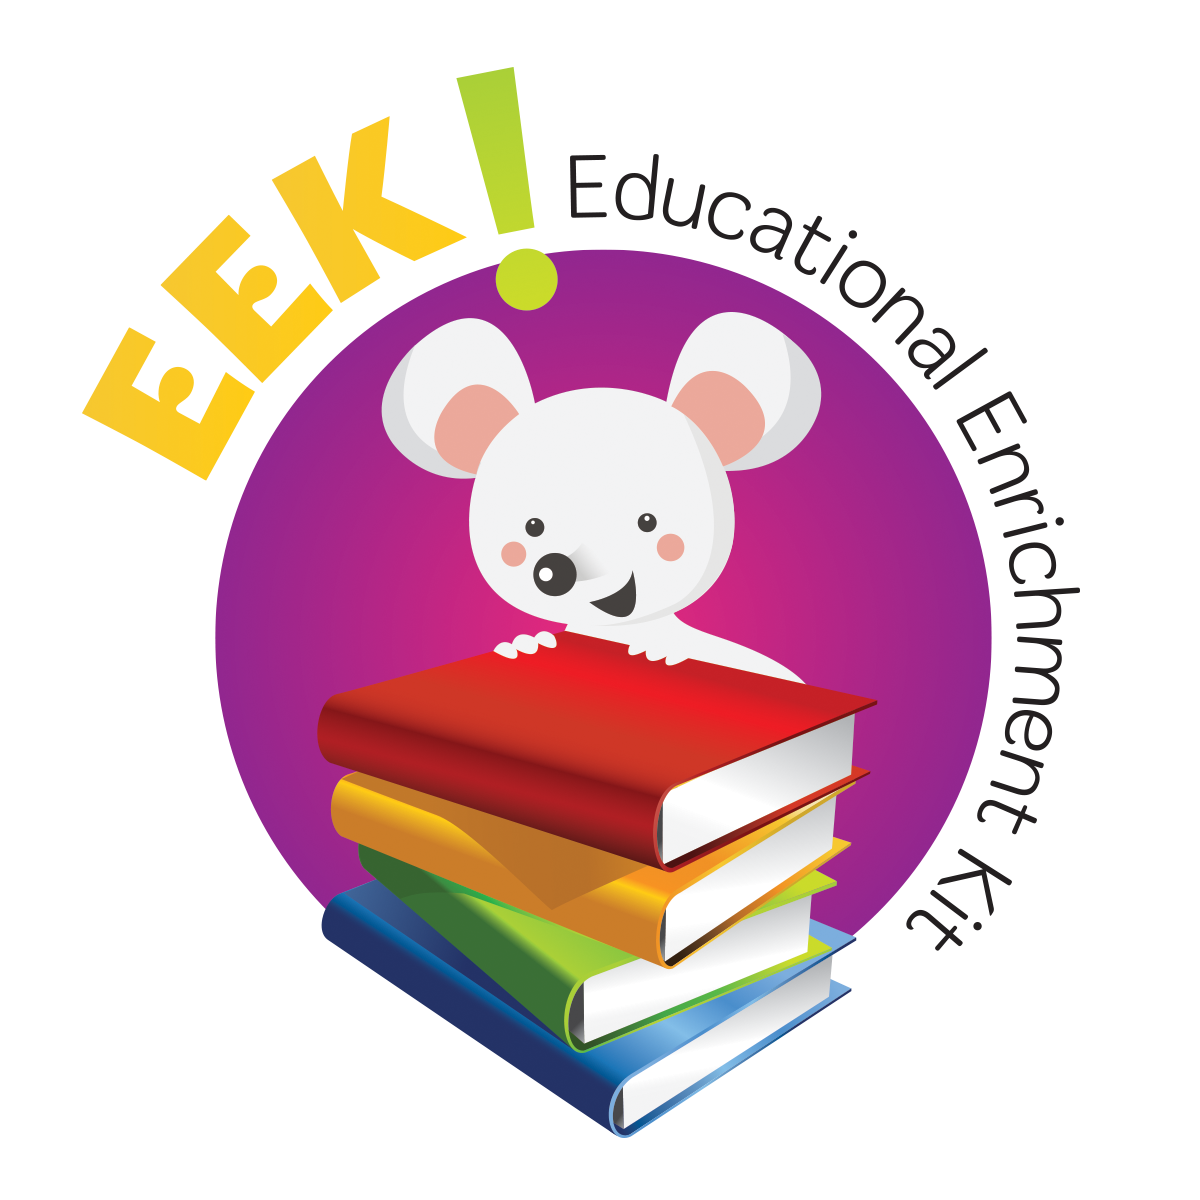 EEK! Educational Enrichment Kit logo of cute mouse sitting on a stack of books